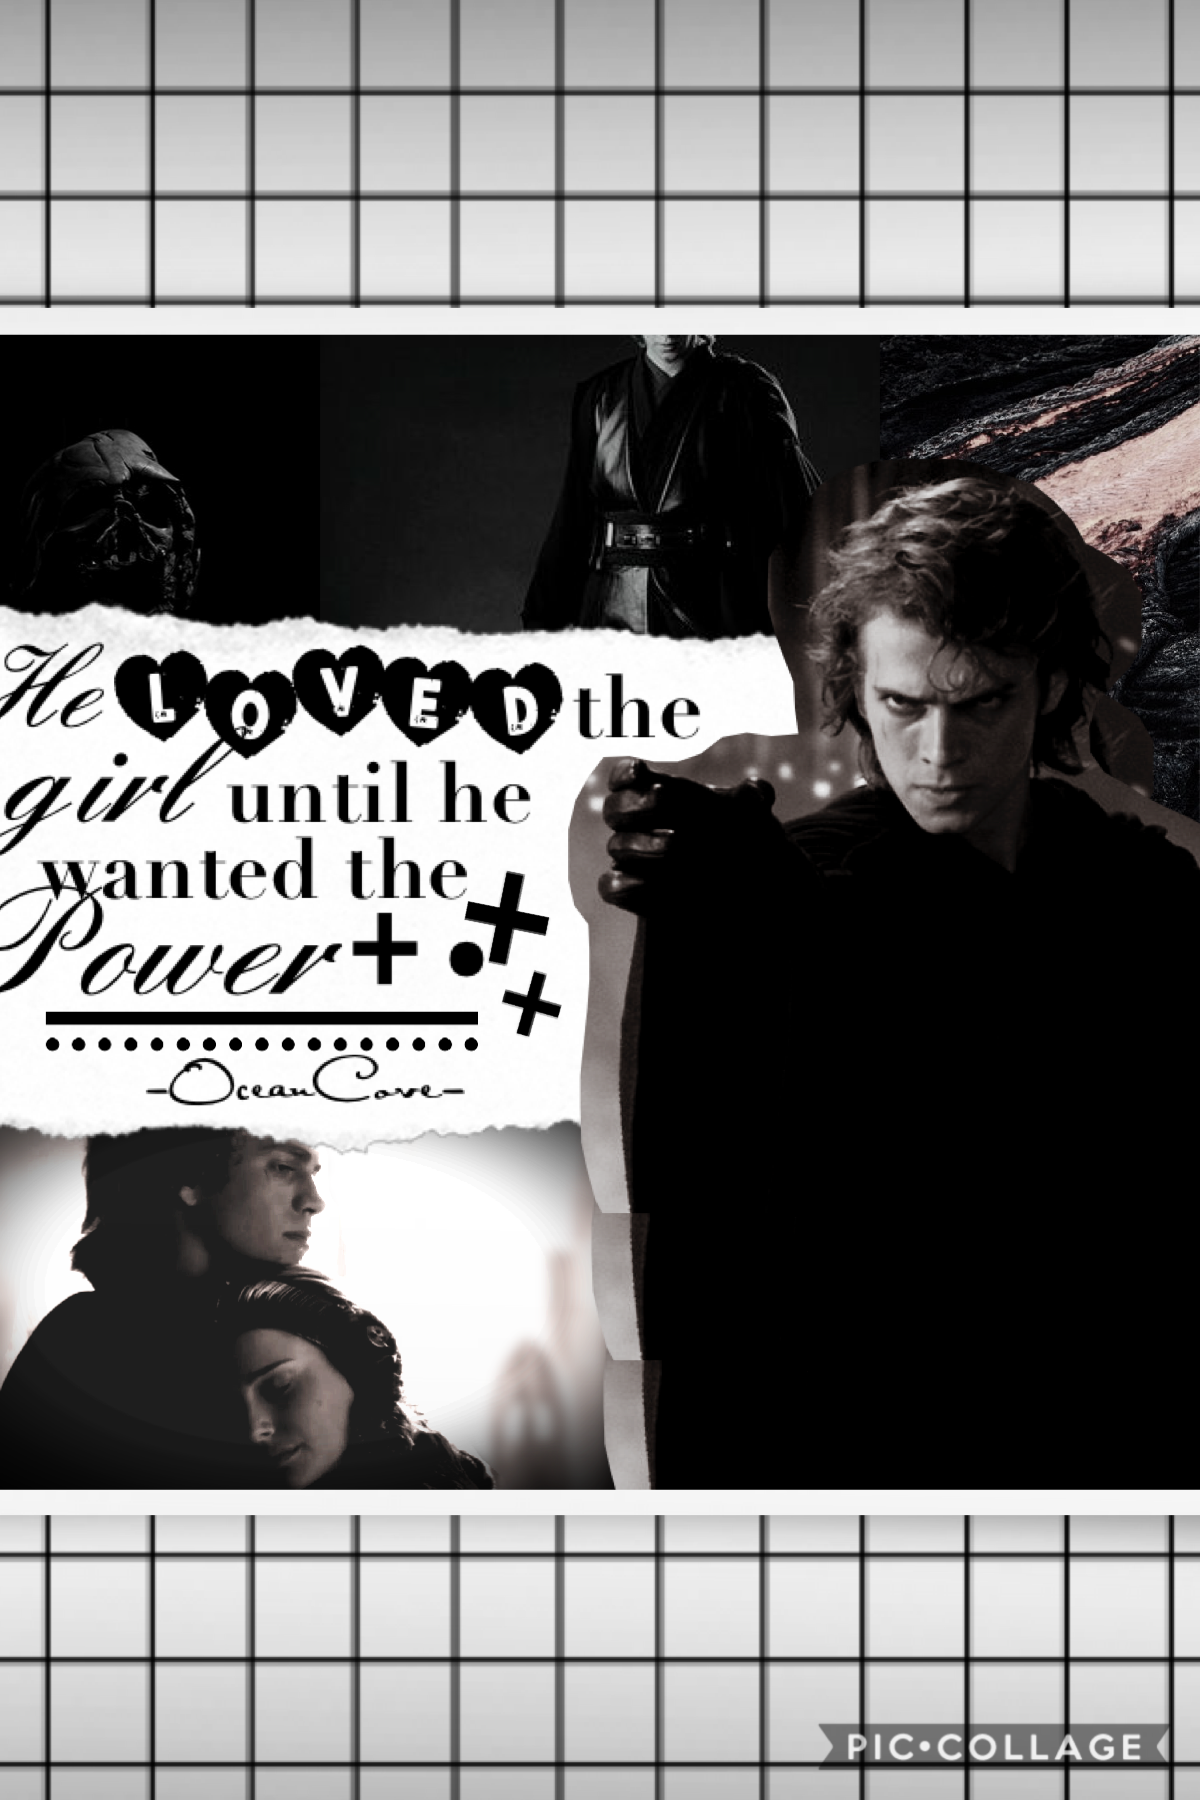 An anidala collage for Valentine's Day ❤️